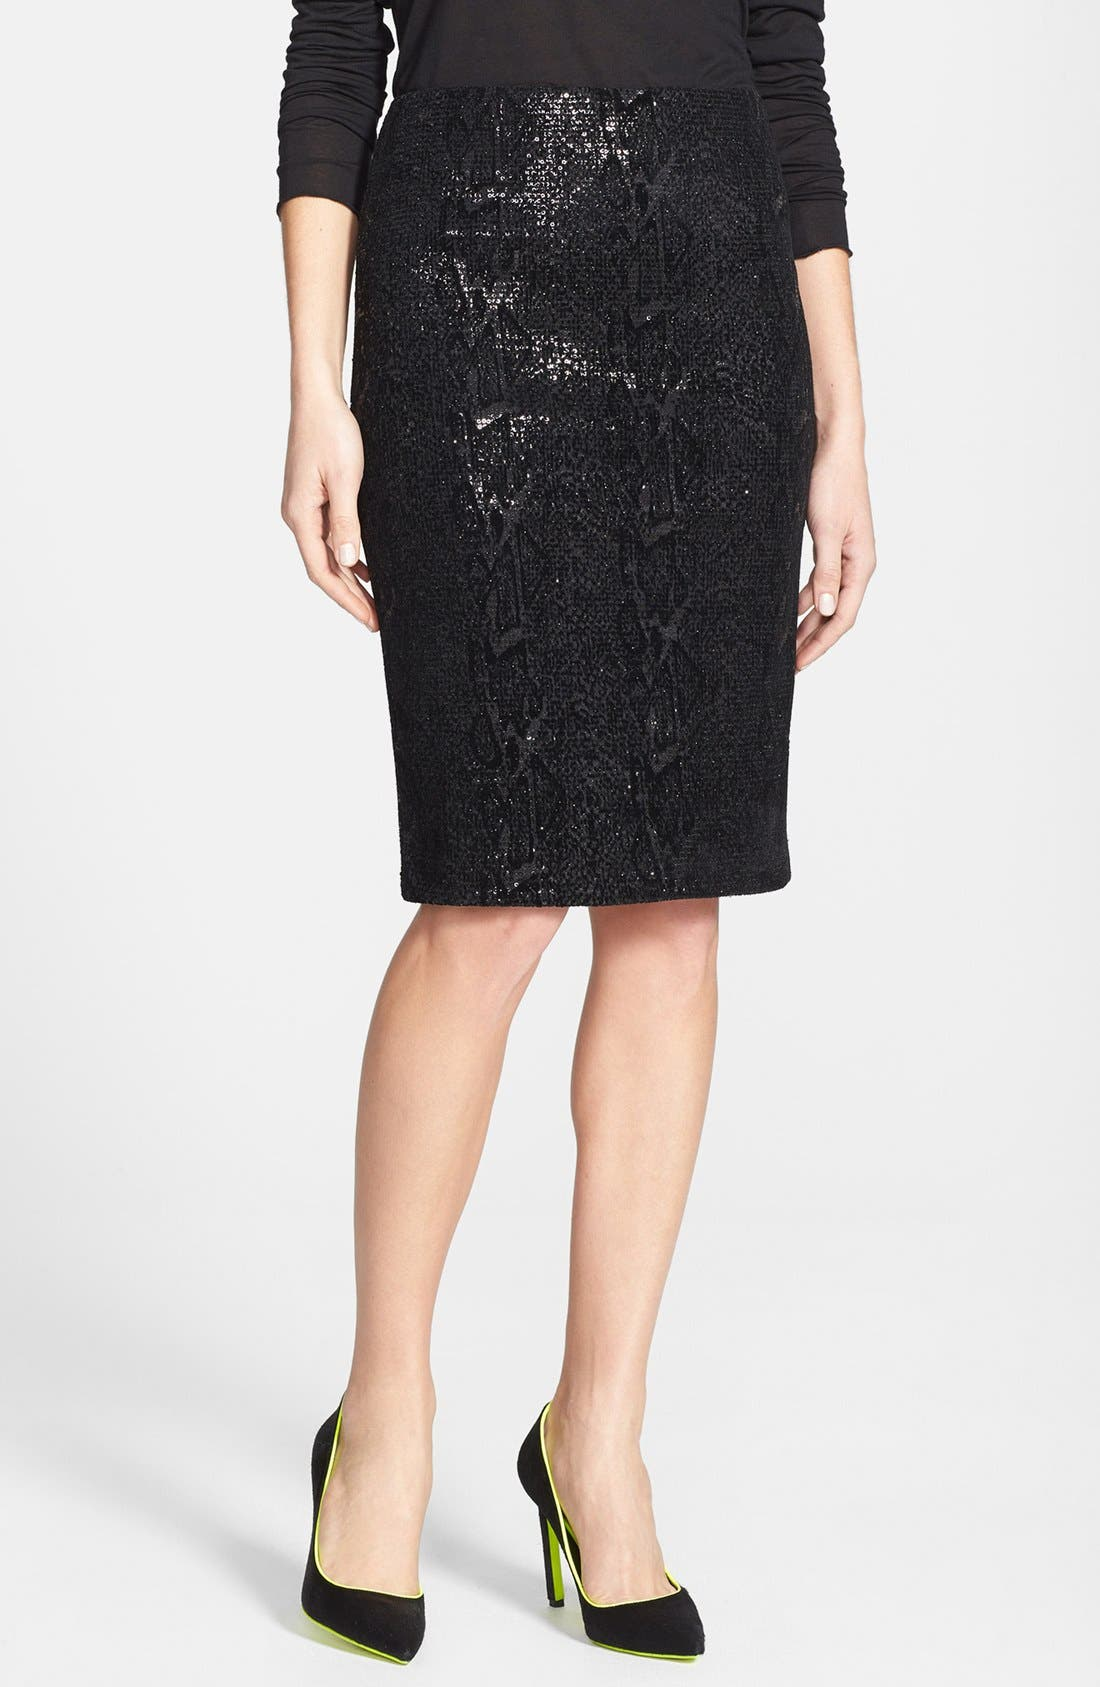 Alternate Image 1 Selected - Velvet by Graham & Spencer Sequin Pencil Skirt